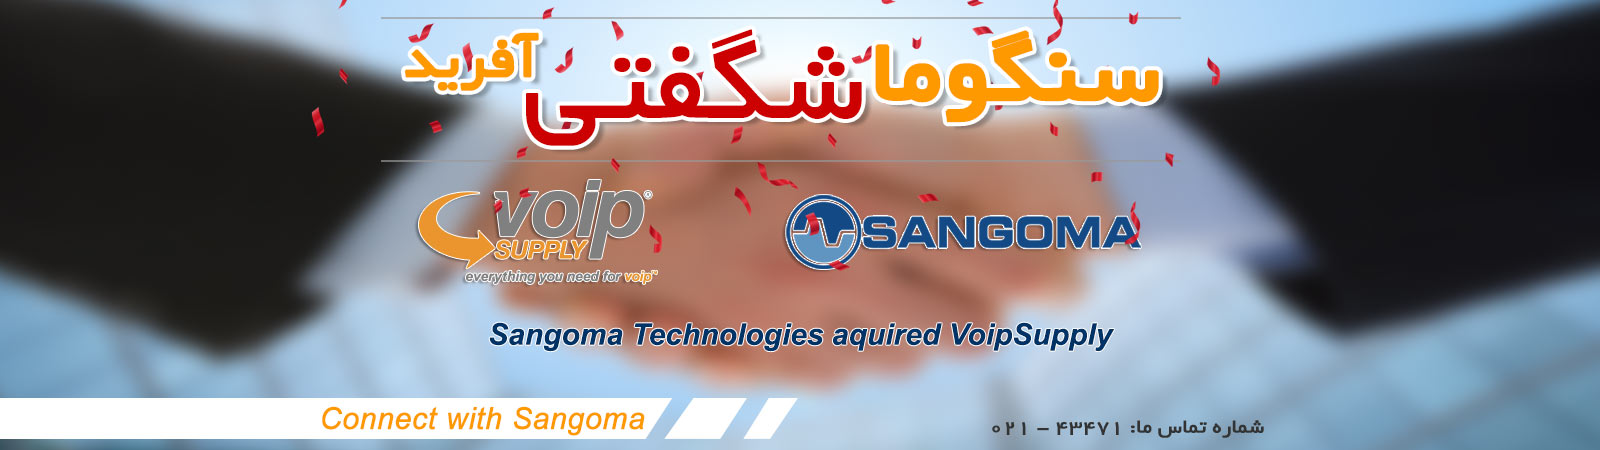 sangoma - voip - supply